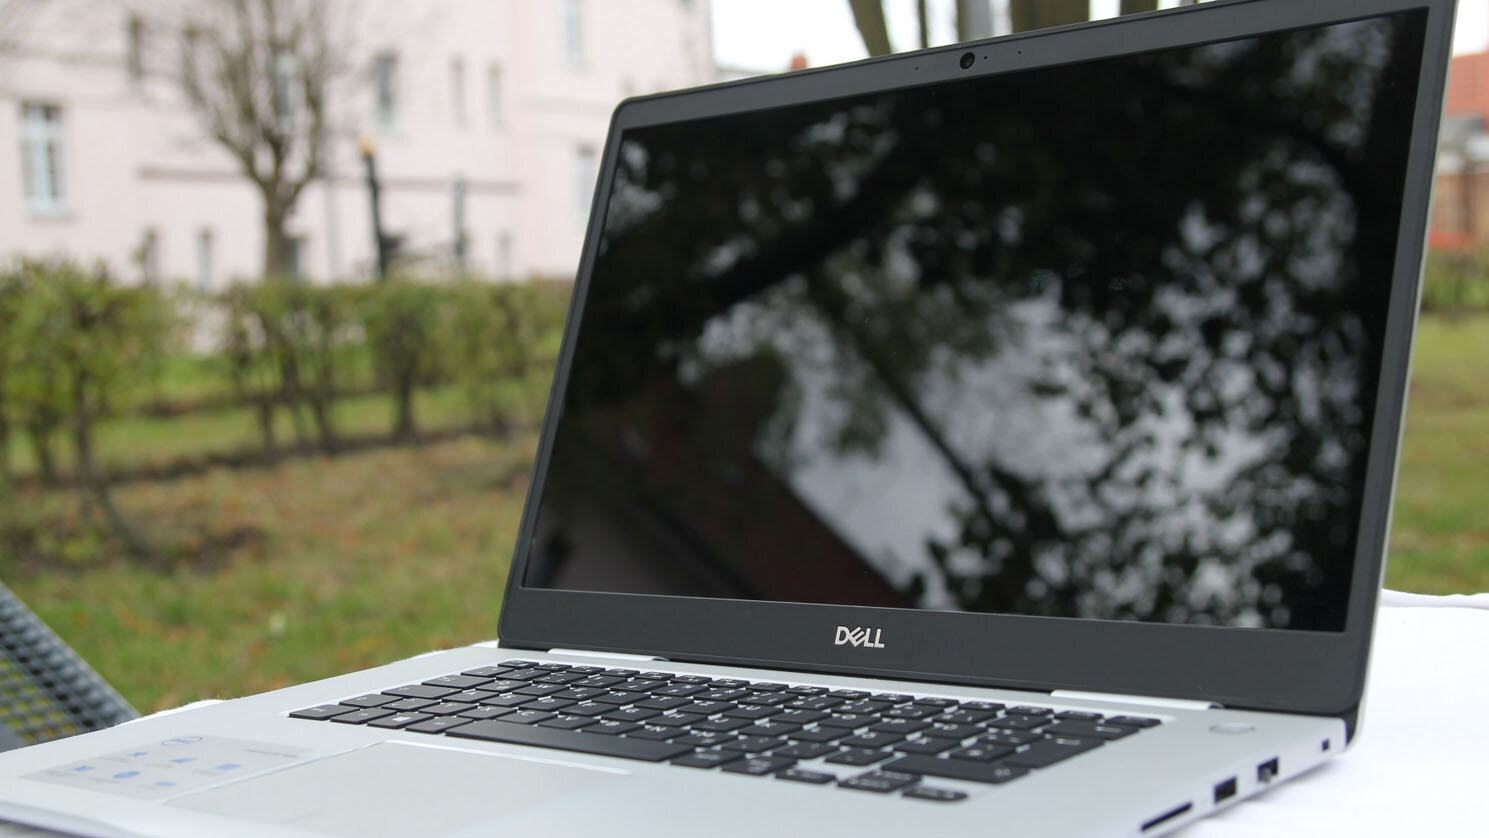 Dell Inspiron 7570 N5I5102OW 15,6 inch